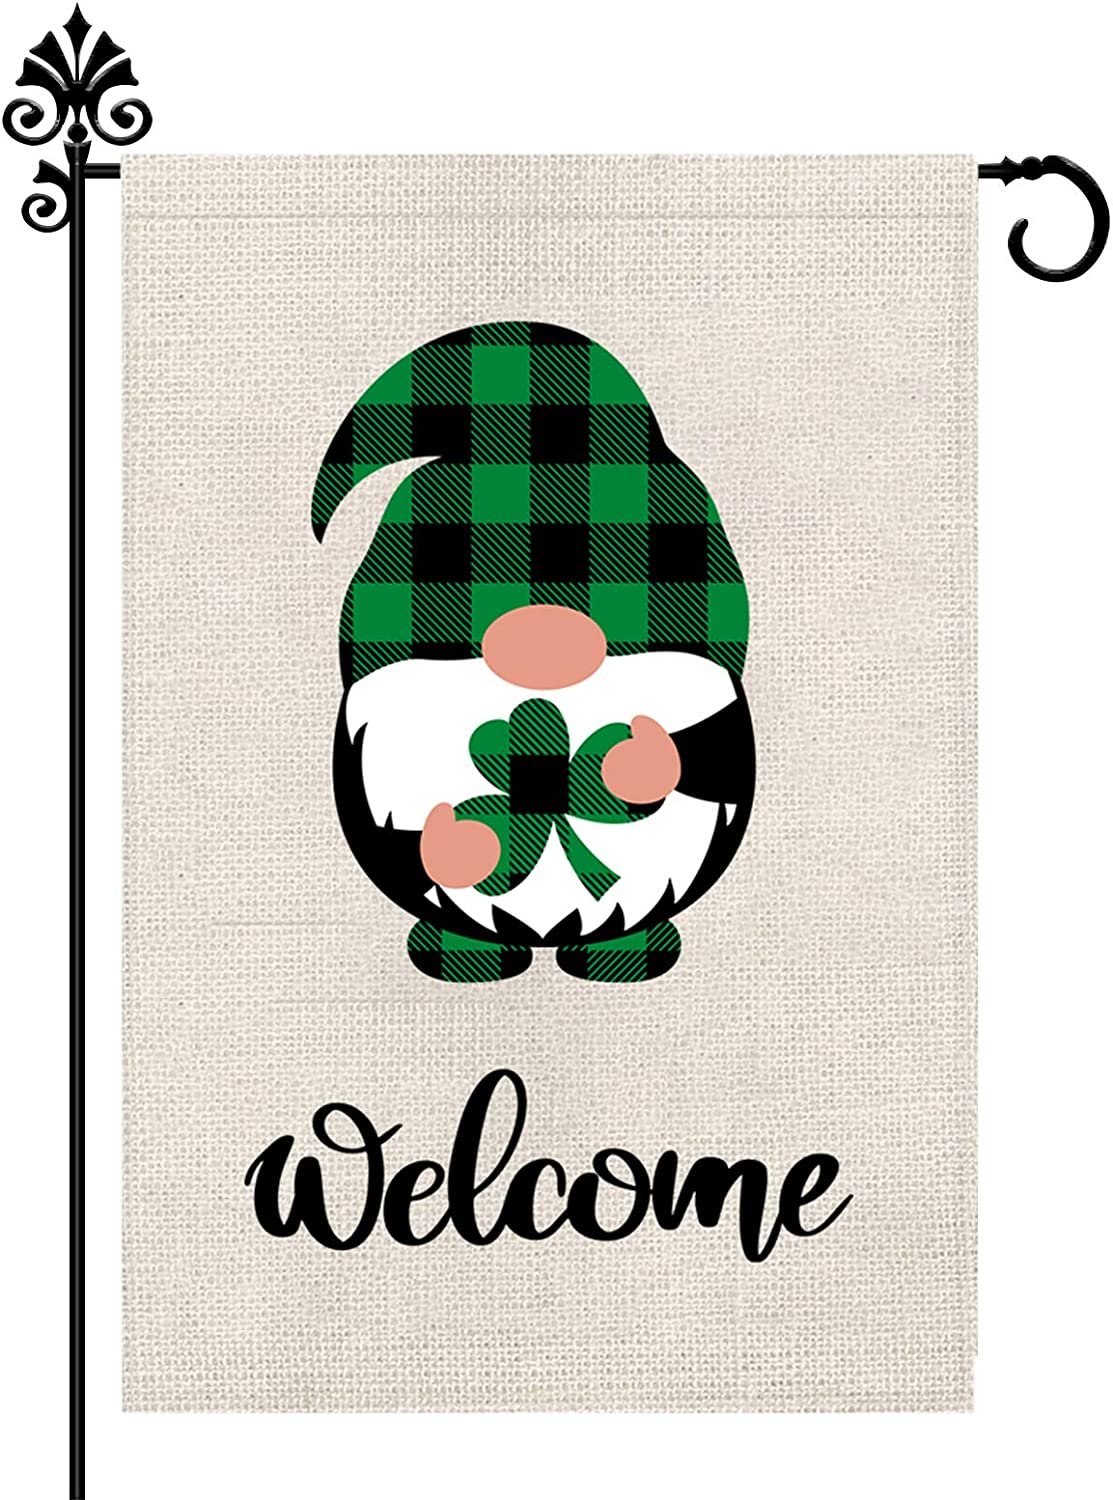 St Patrick's Day Garden Flag Welcome Shamrocks Gnome Vertical Double Sided Gnomes Outdoor Yard Decoration 12 x 18 Inch